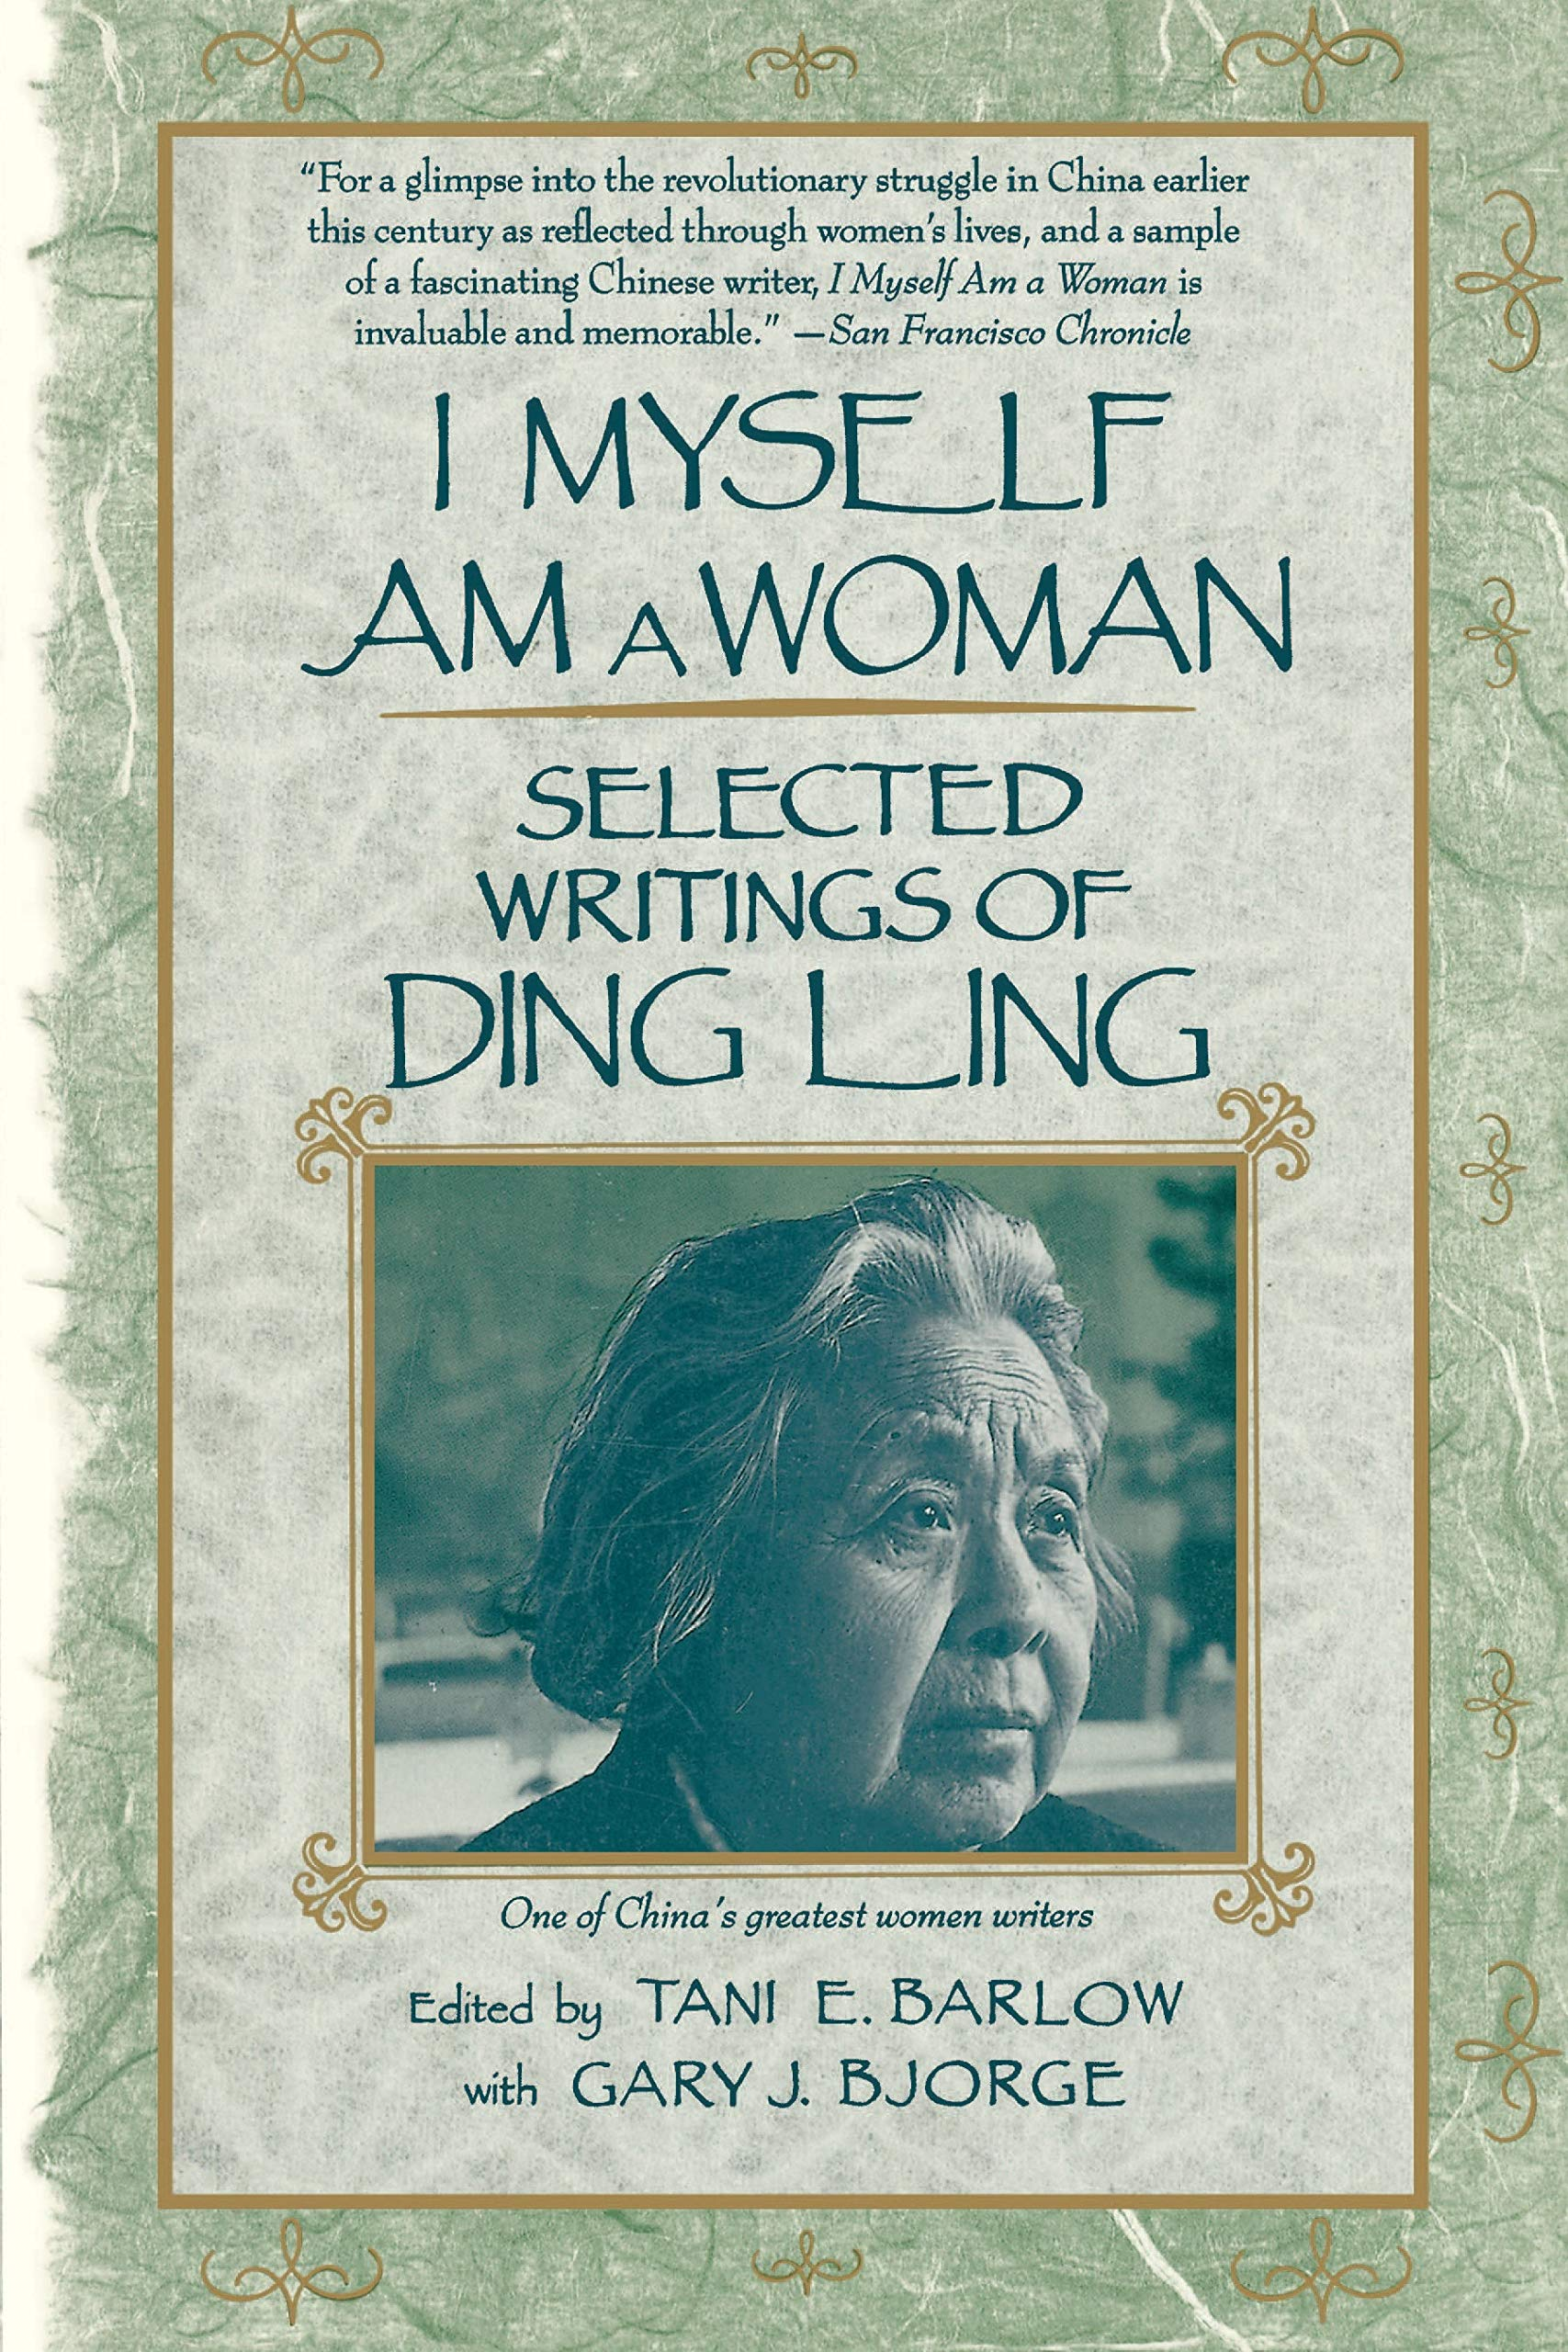 Amazon.com: I Myself Am a Woman: Selected Writings of Ding Ling ...